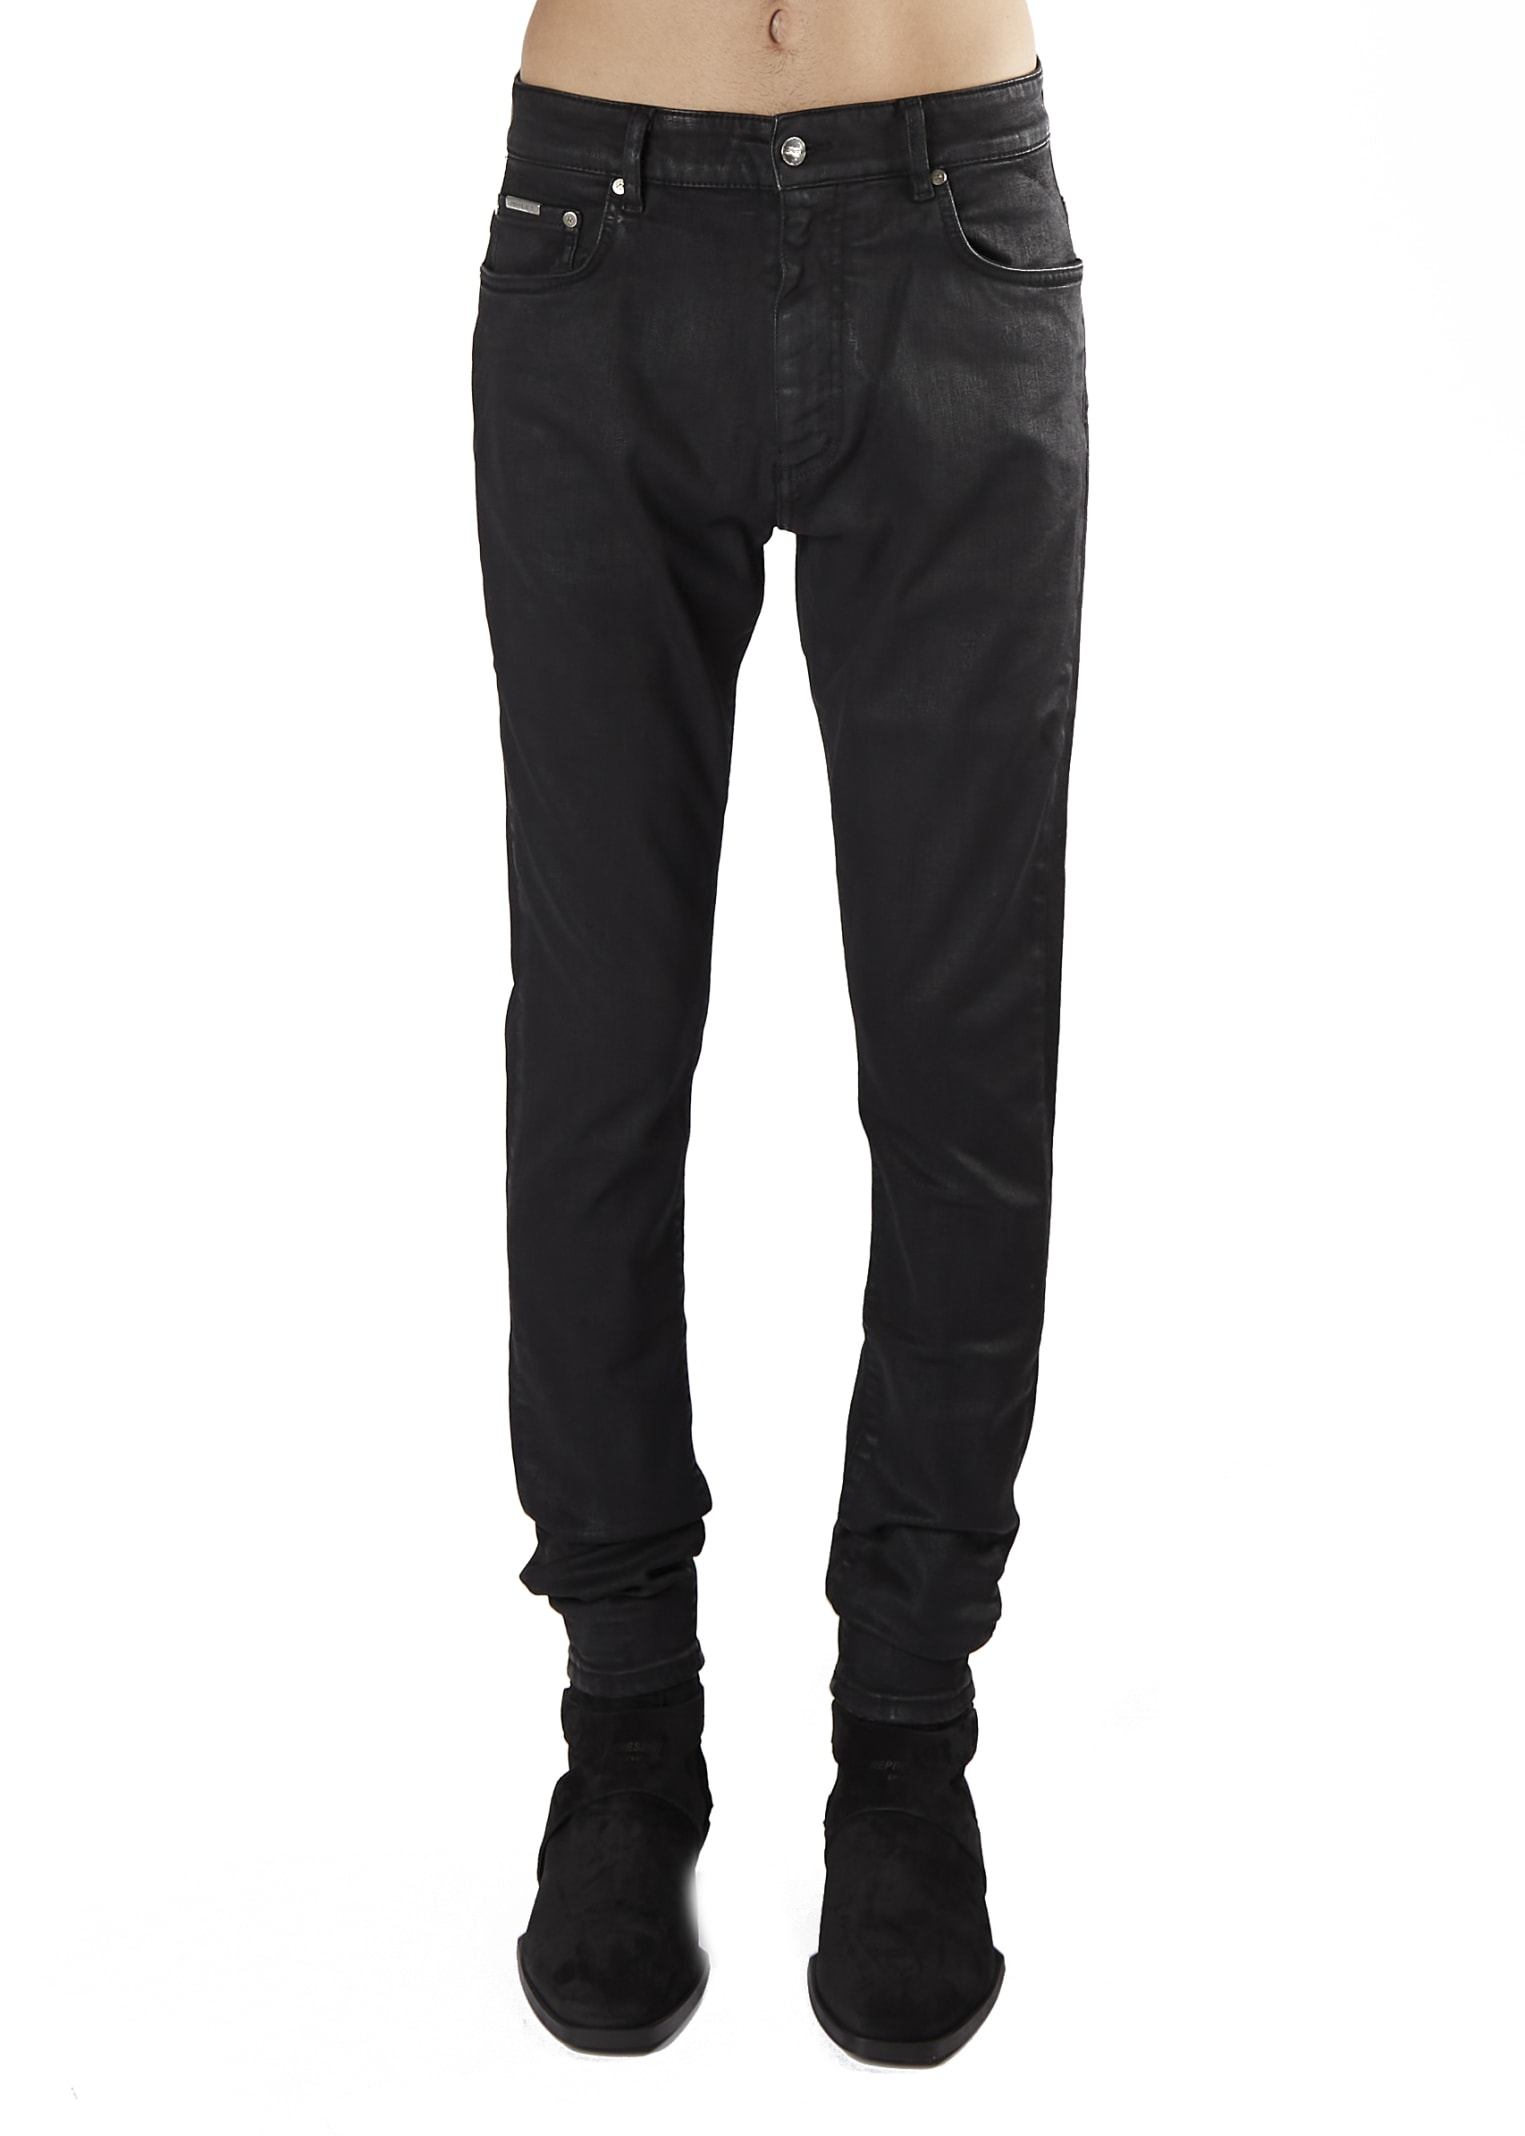 REPRESENT Essential Mid-rise Skinny Jeans